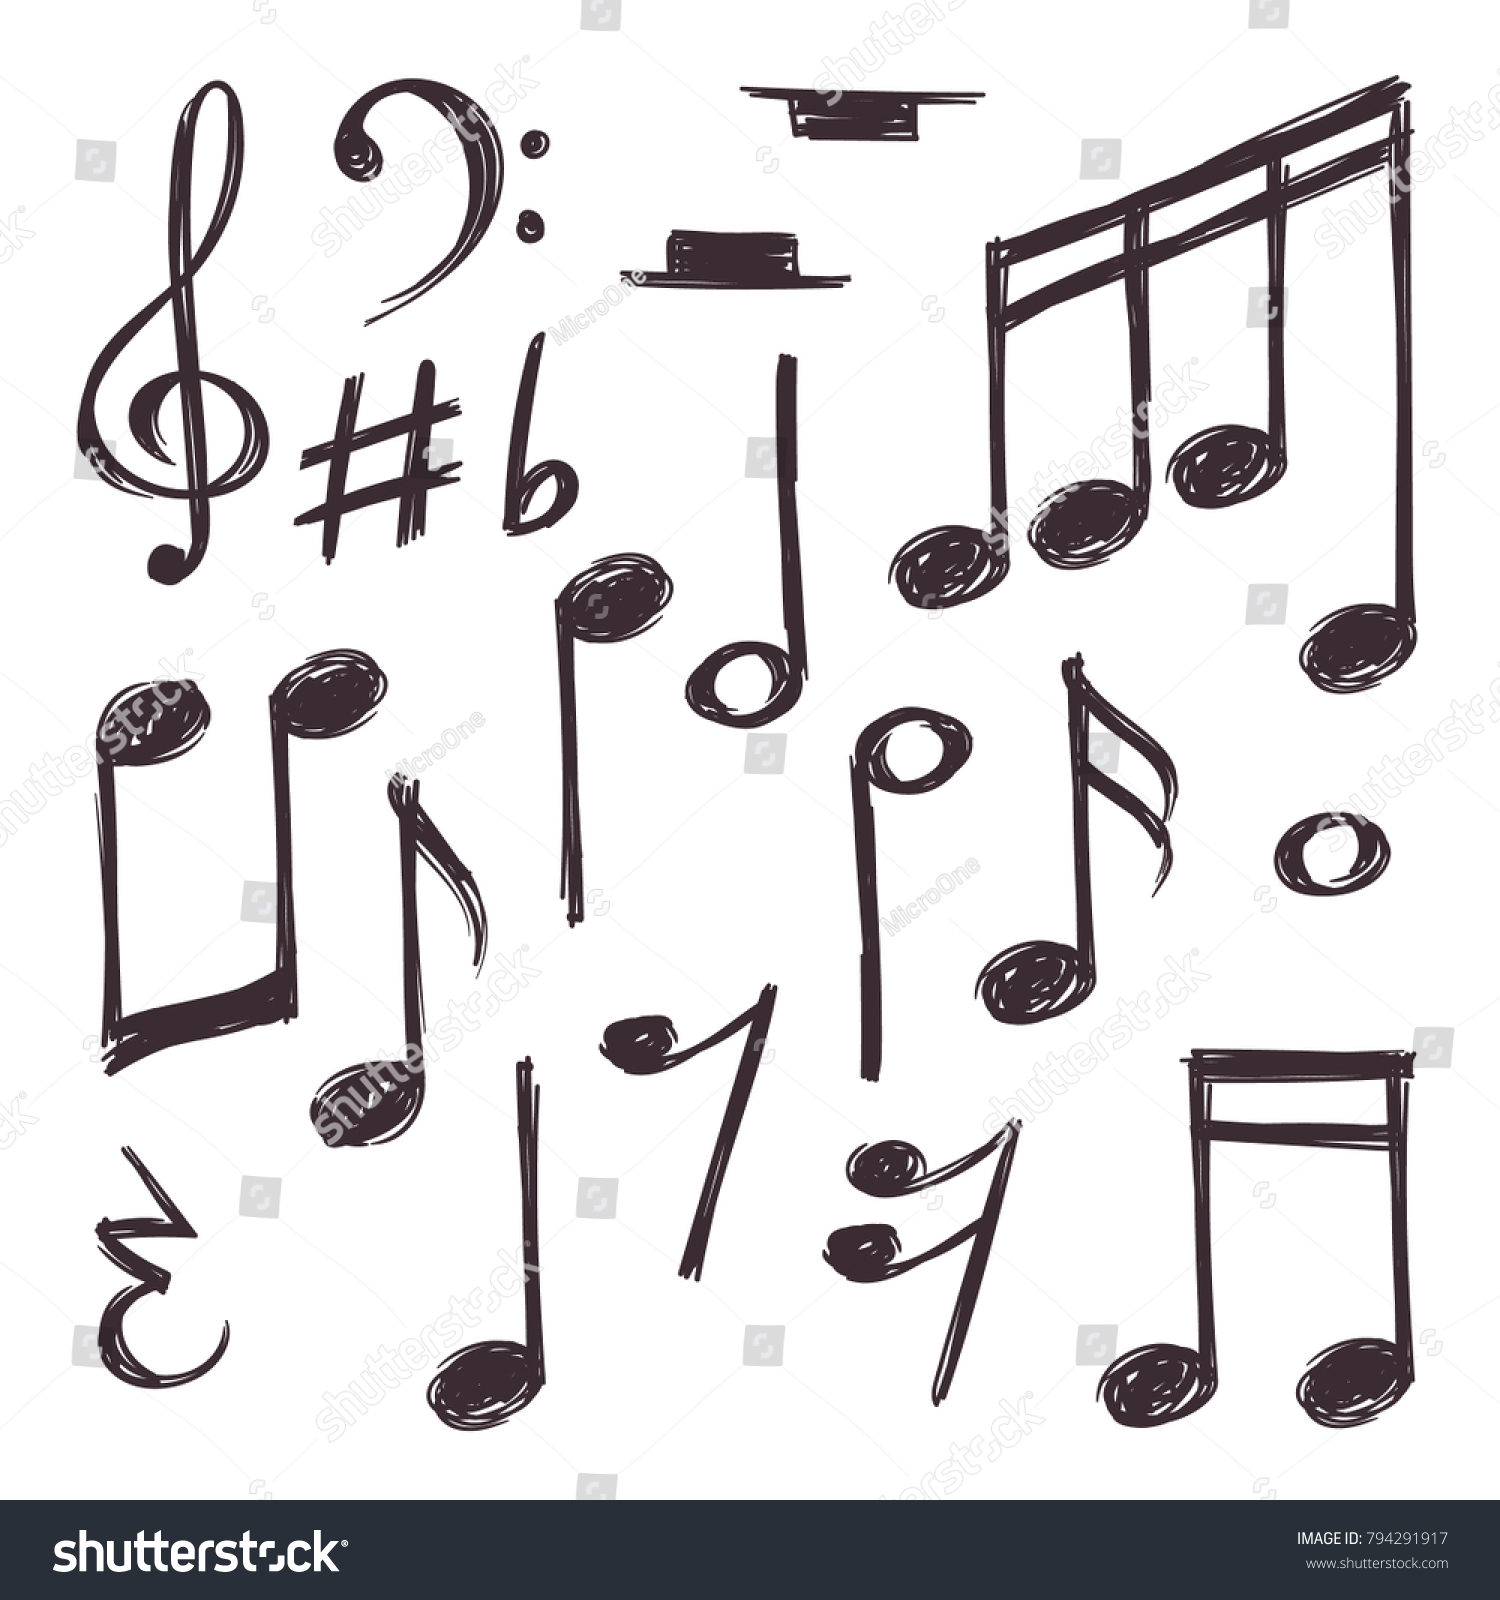 Hand Drawn Music Note Vector Musical Symbols Isolated On White